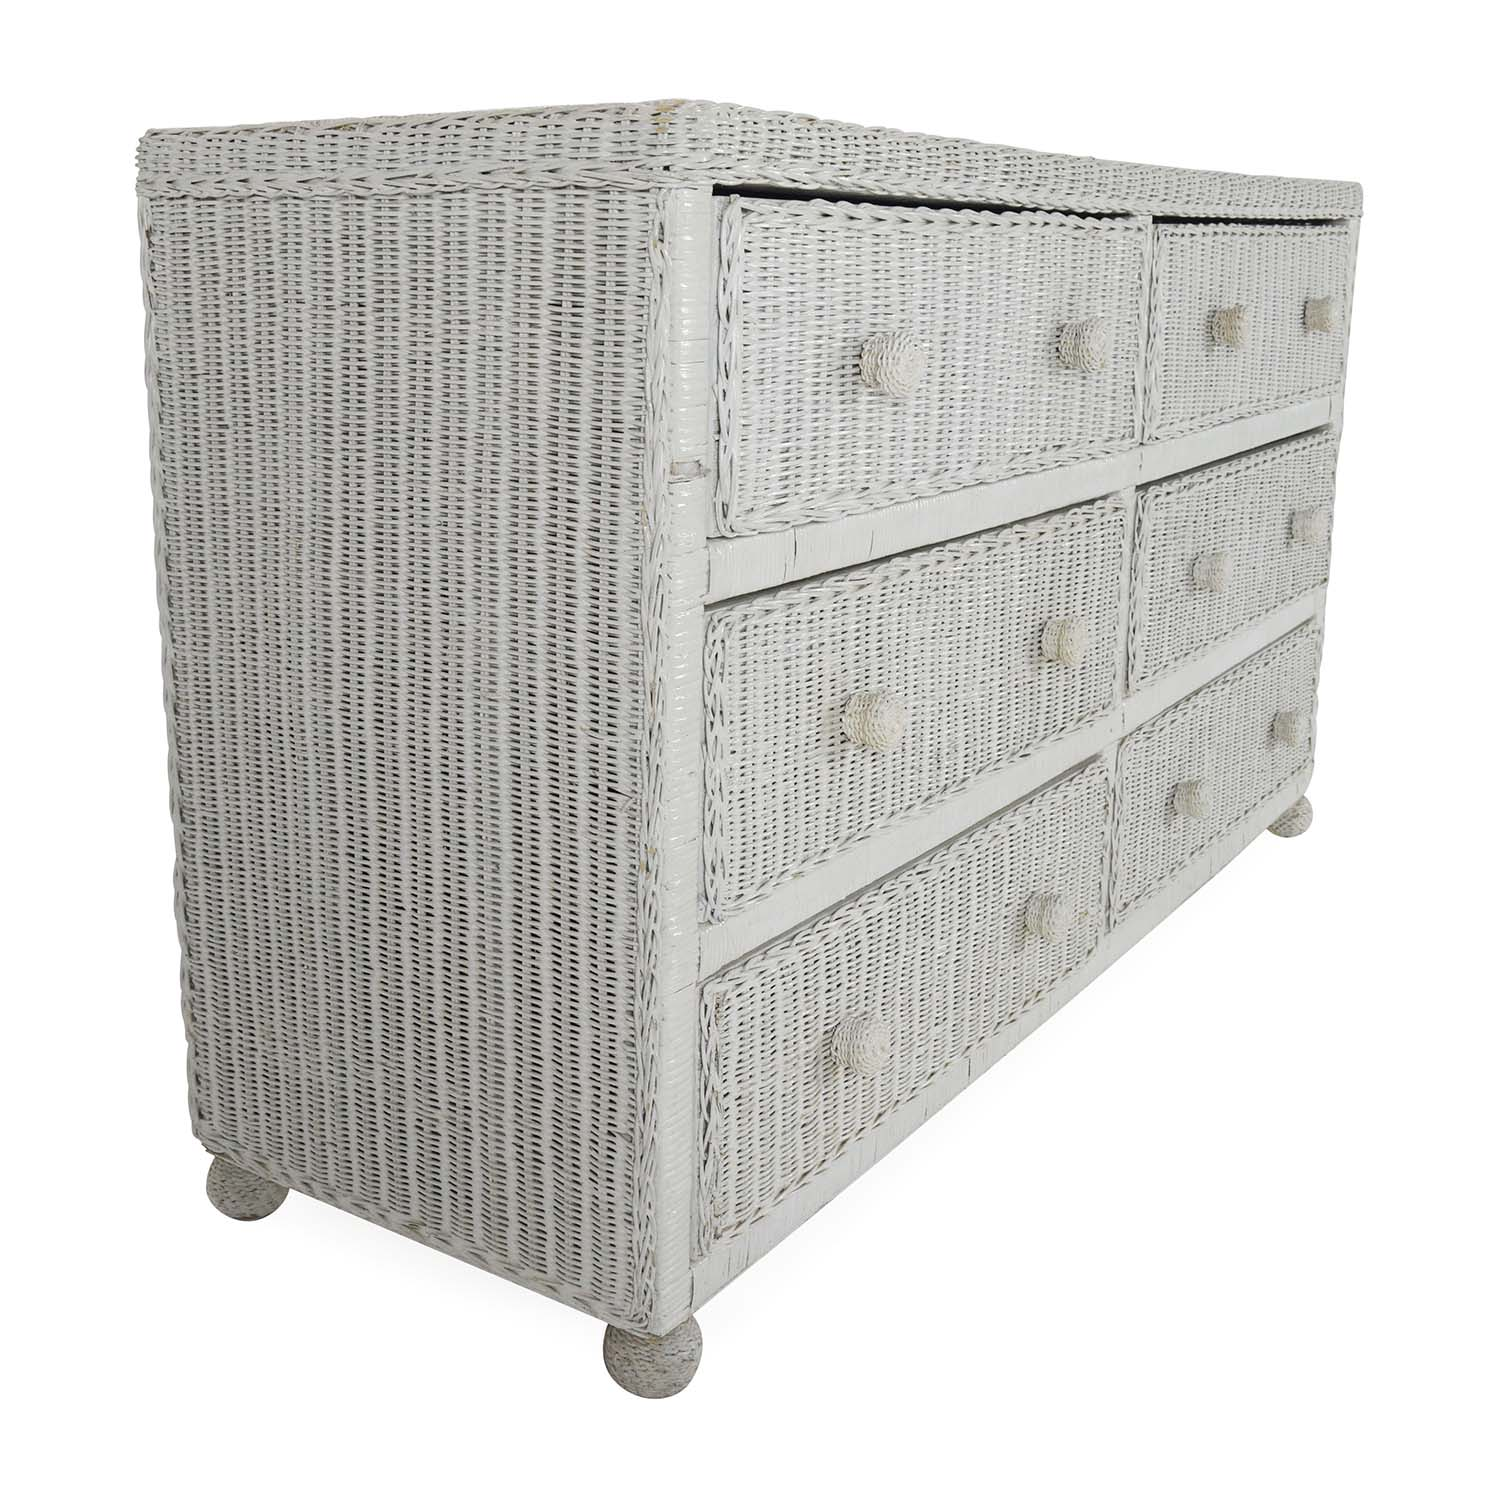 storage center sale hand three media white second baskets with buy wicker for dresser off